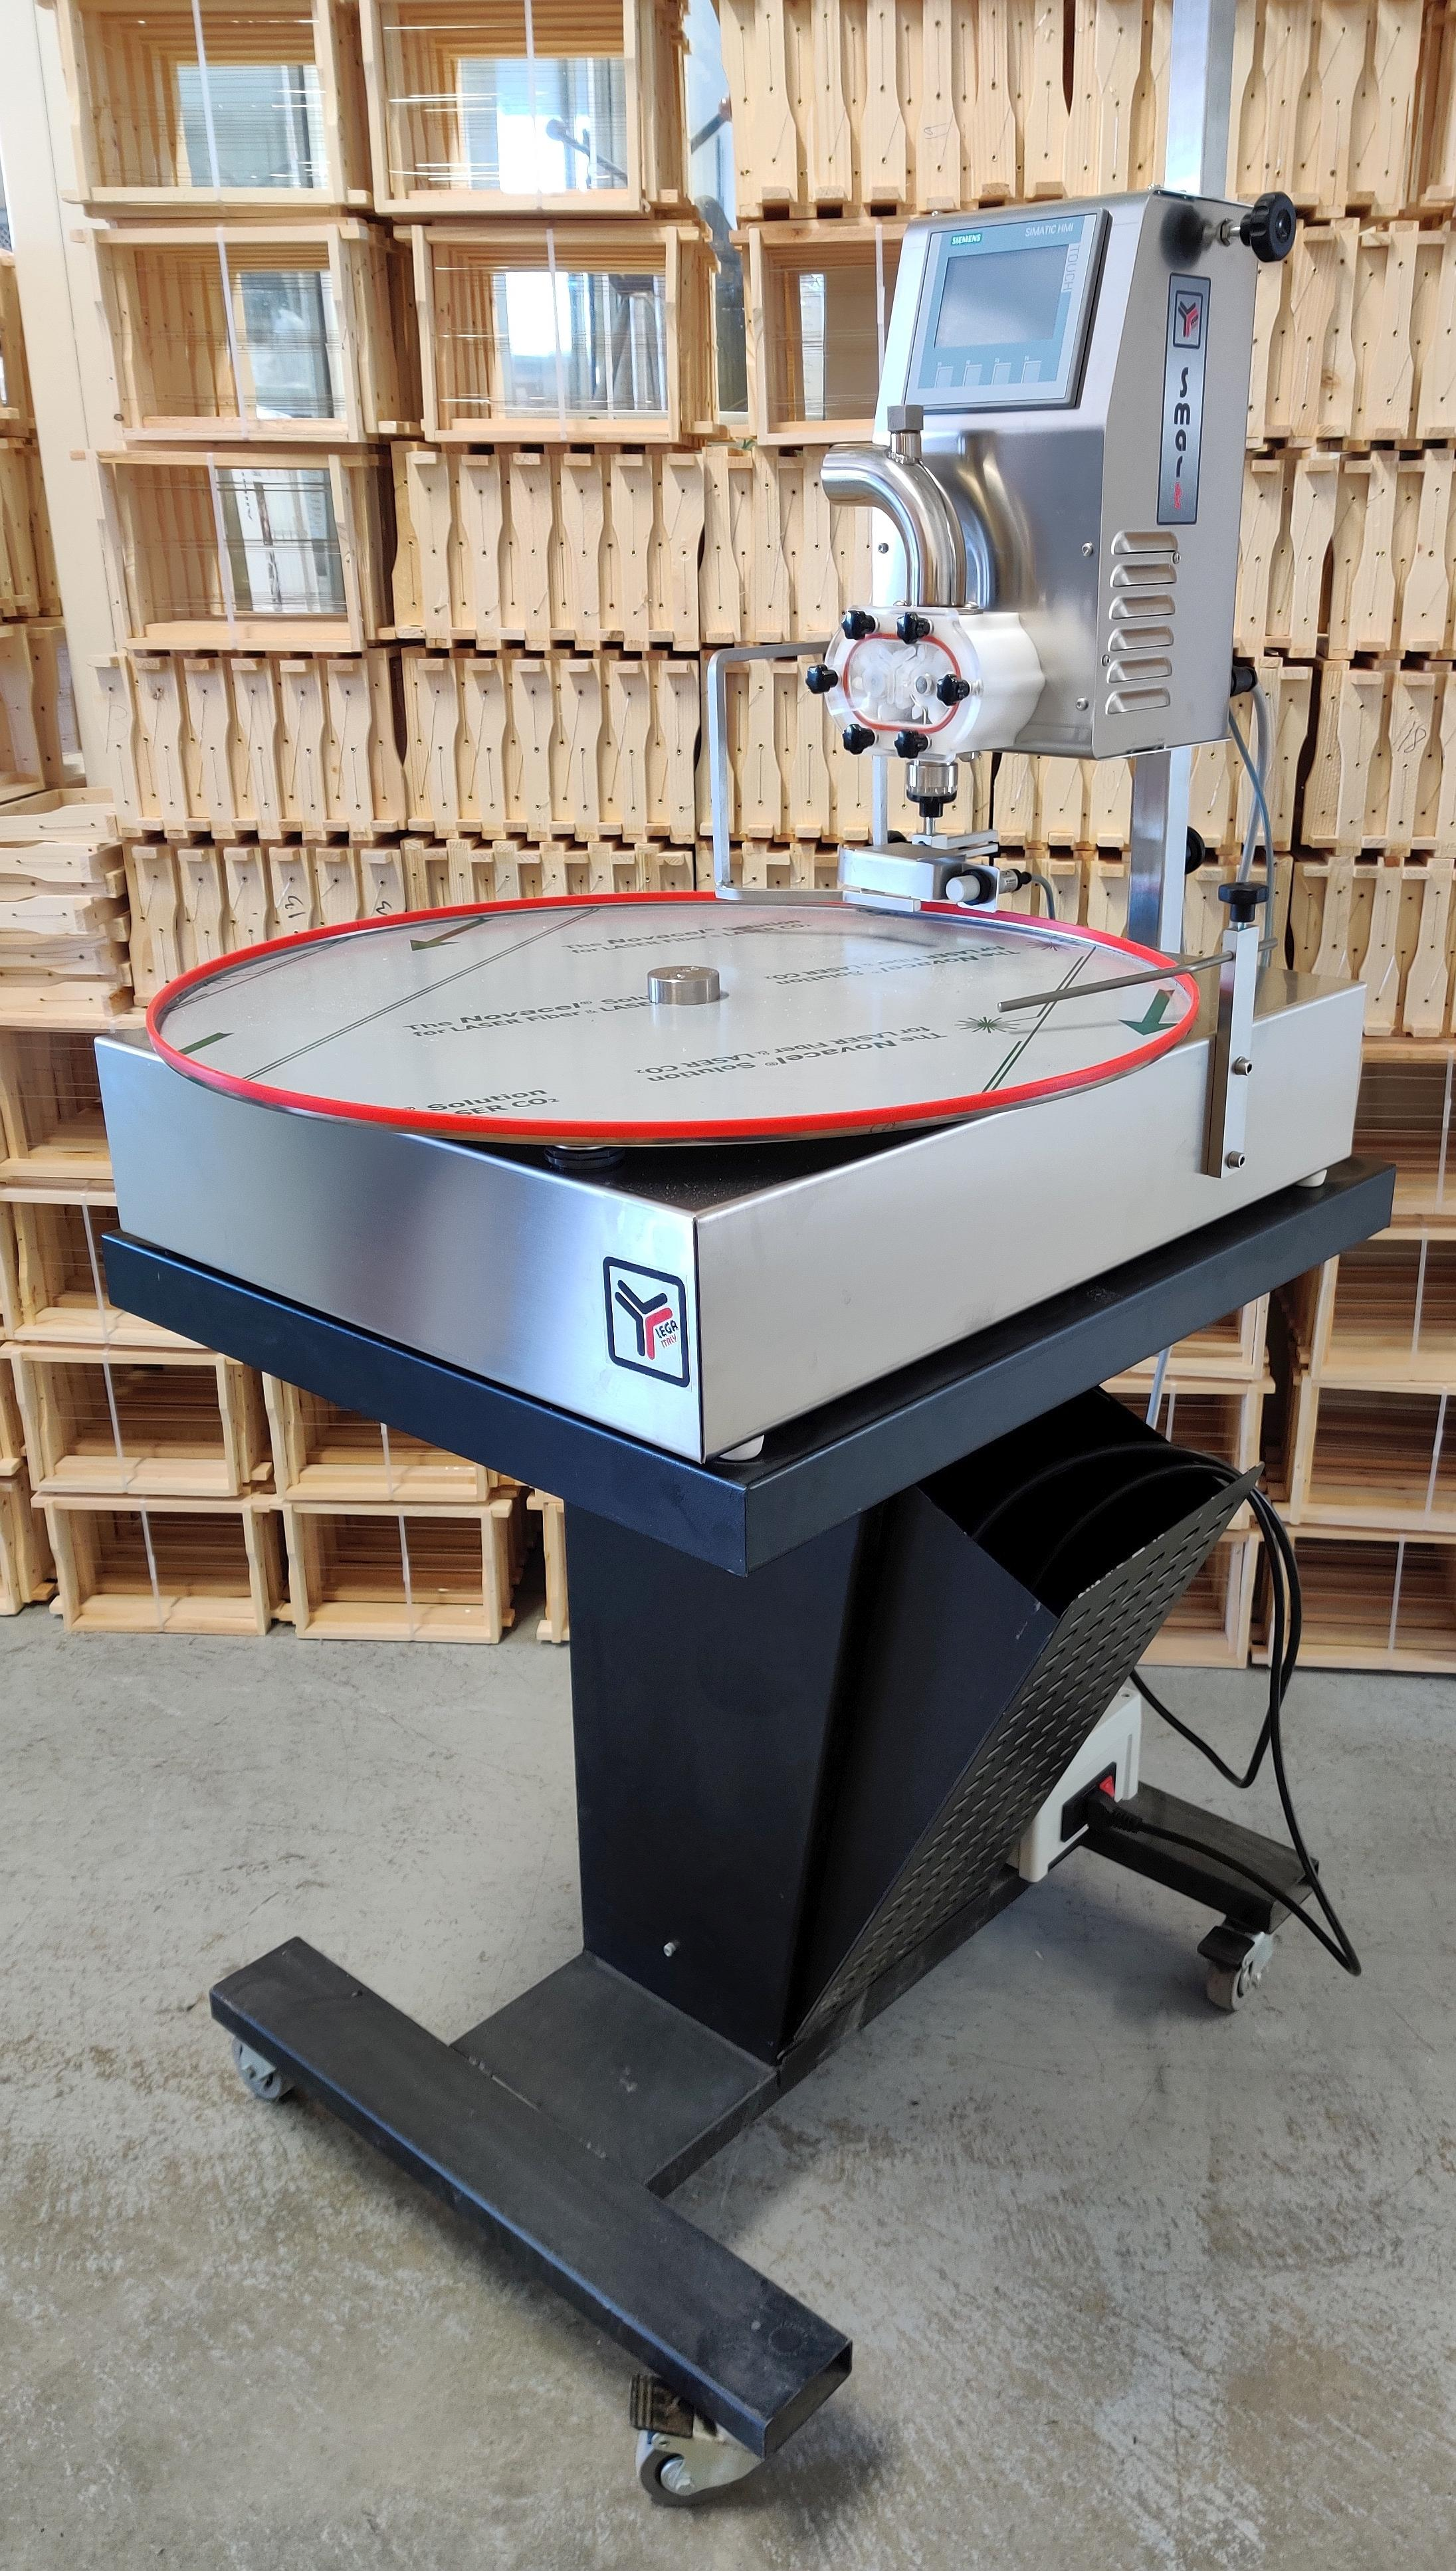 00MA32 TABLE TOURNANTE AVEC POMPE SMART AUTOMATIQUE